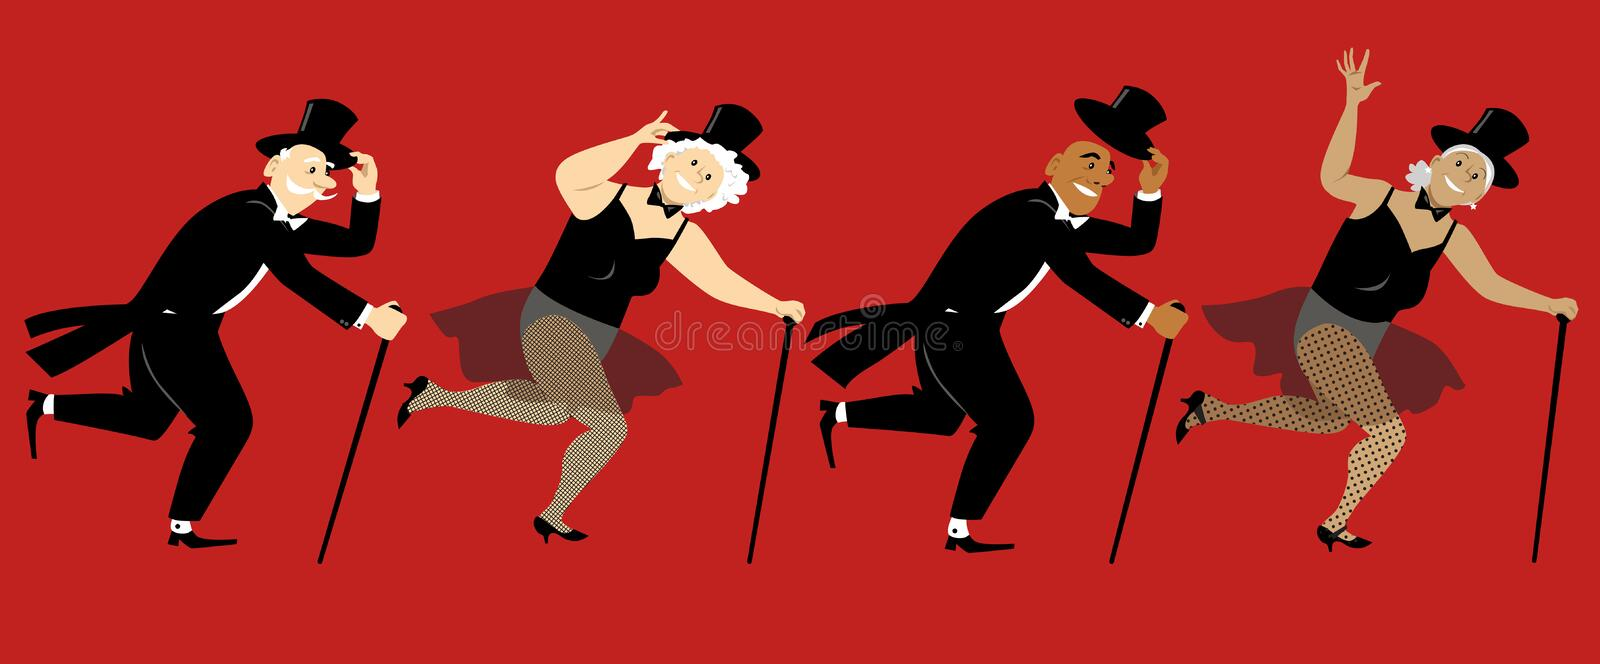 Tsp dancing seniors. Senior people dressed in stage costumes, in top hats and with canes tap dancing, EPS 8 vector illustration vector illustration